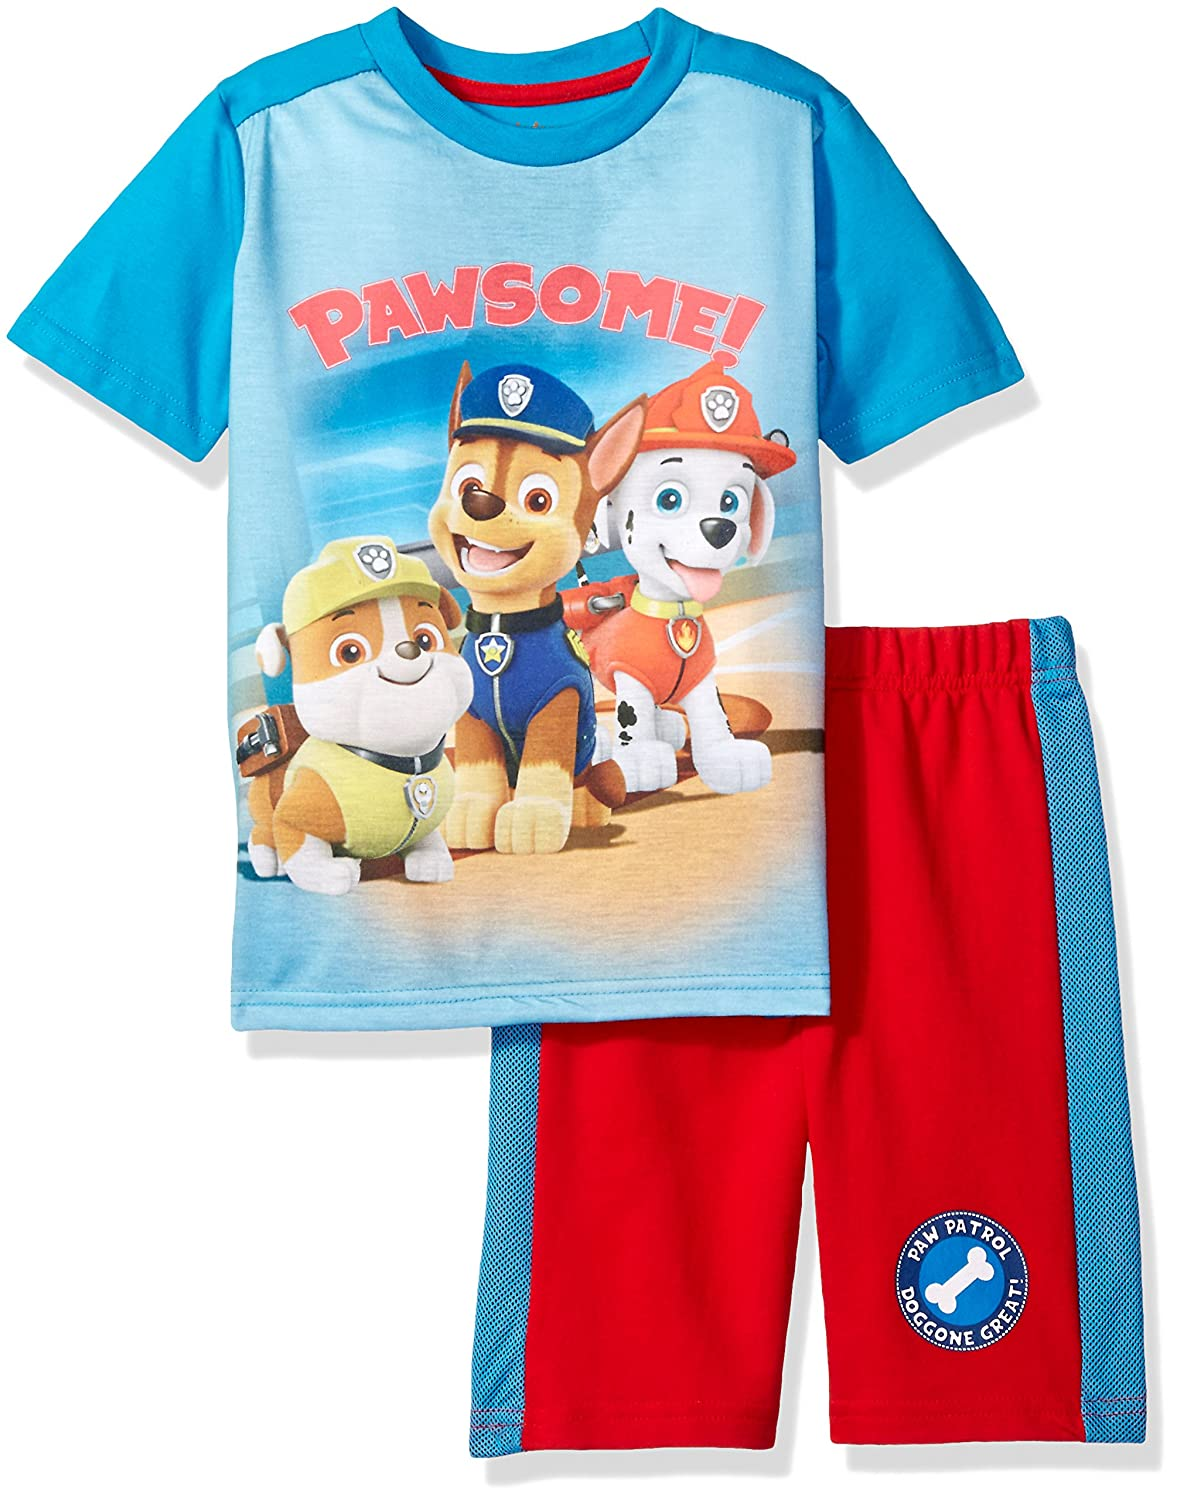 Paw Patrol Boys 2 Piece Tee and French Terry Short Set